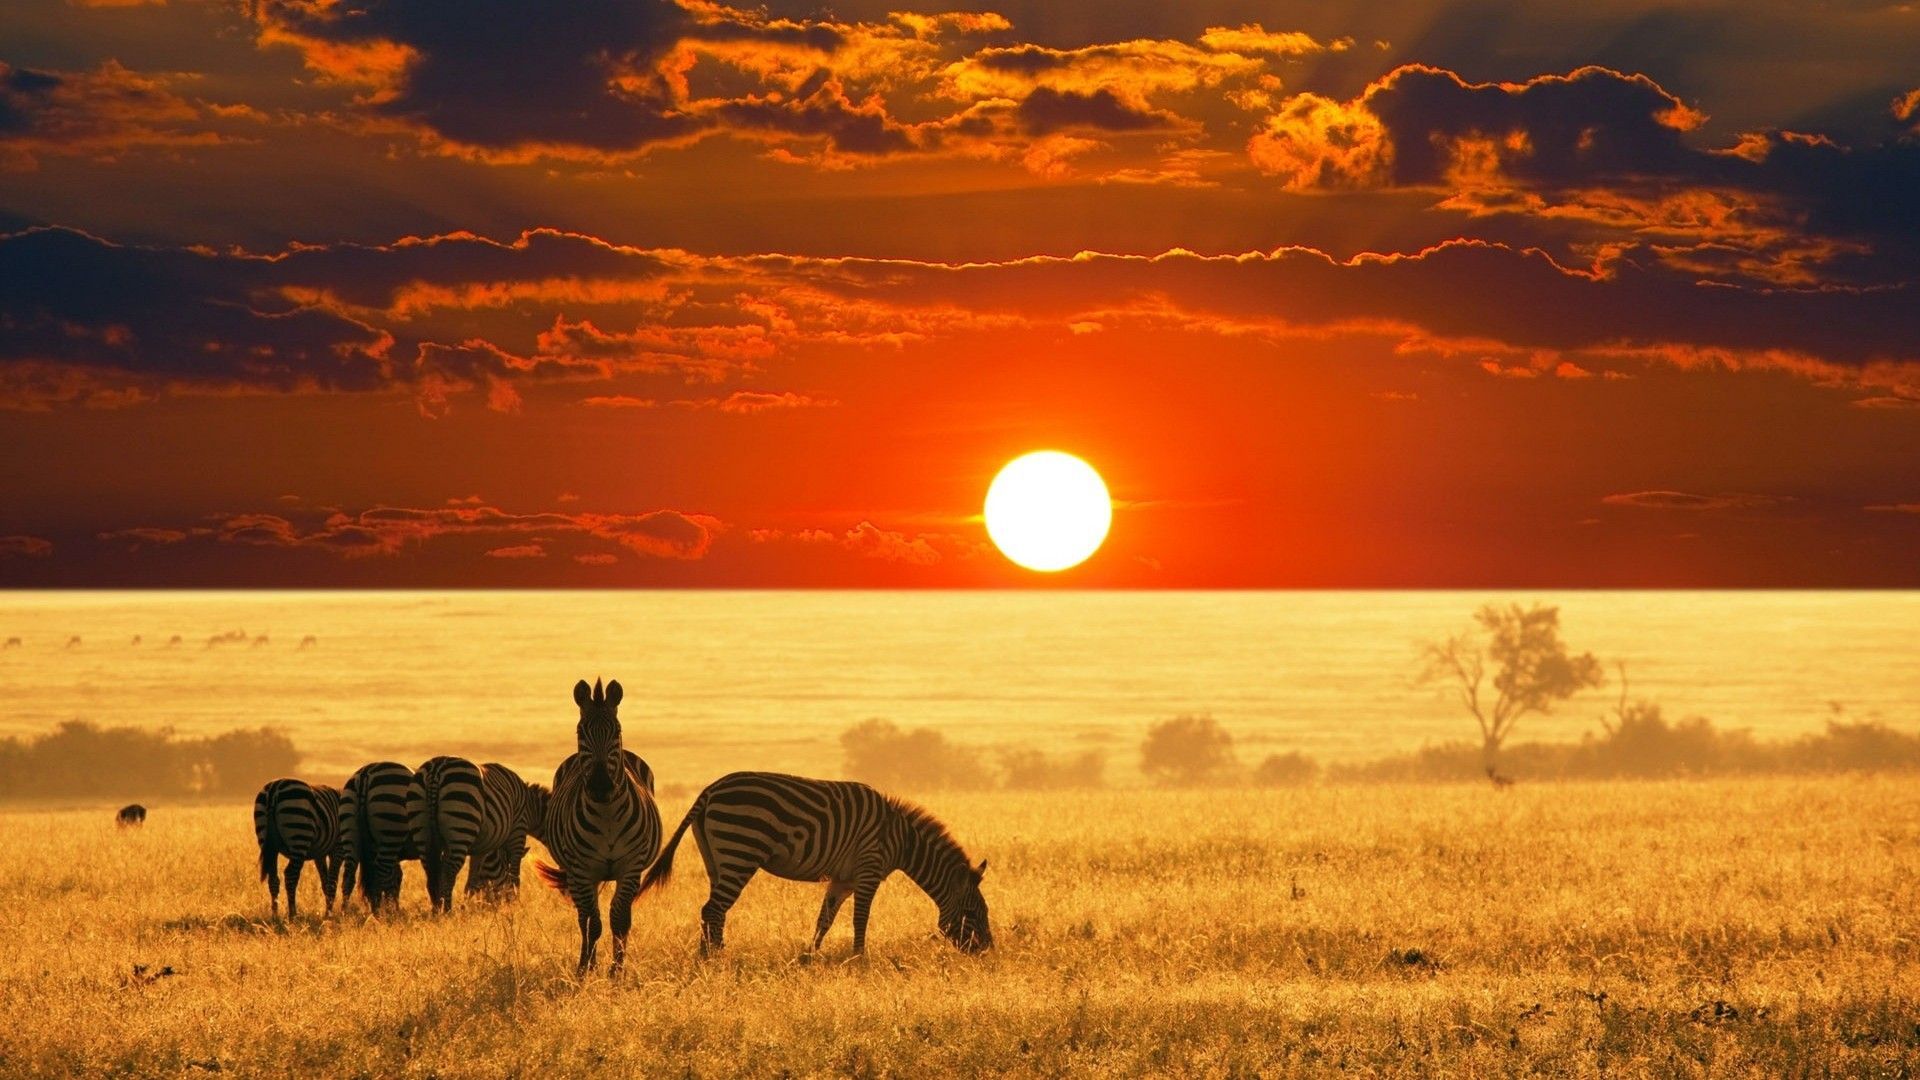 Safari Activities On The African Continent